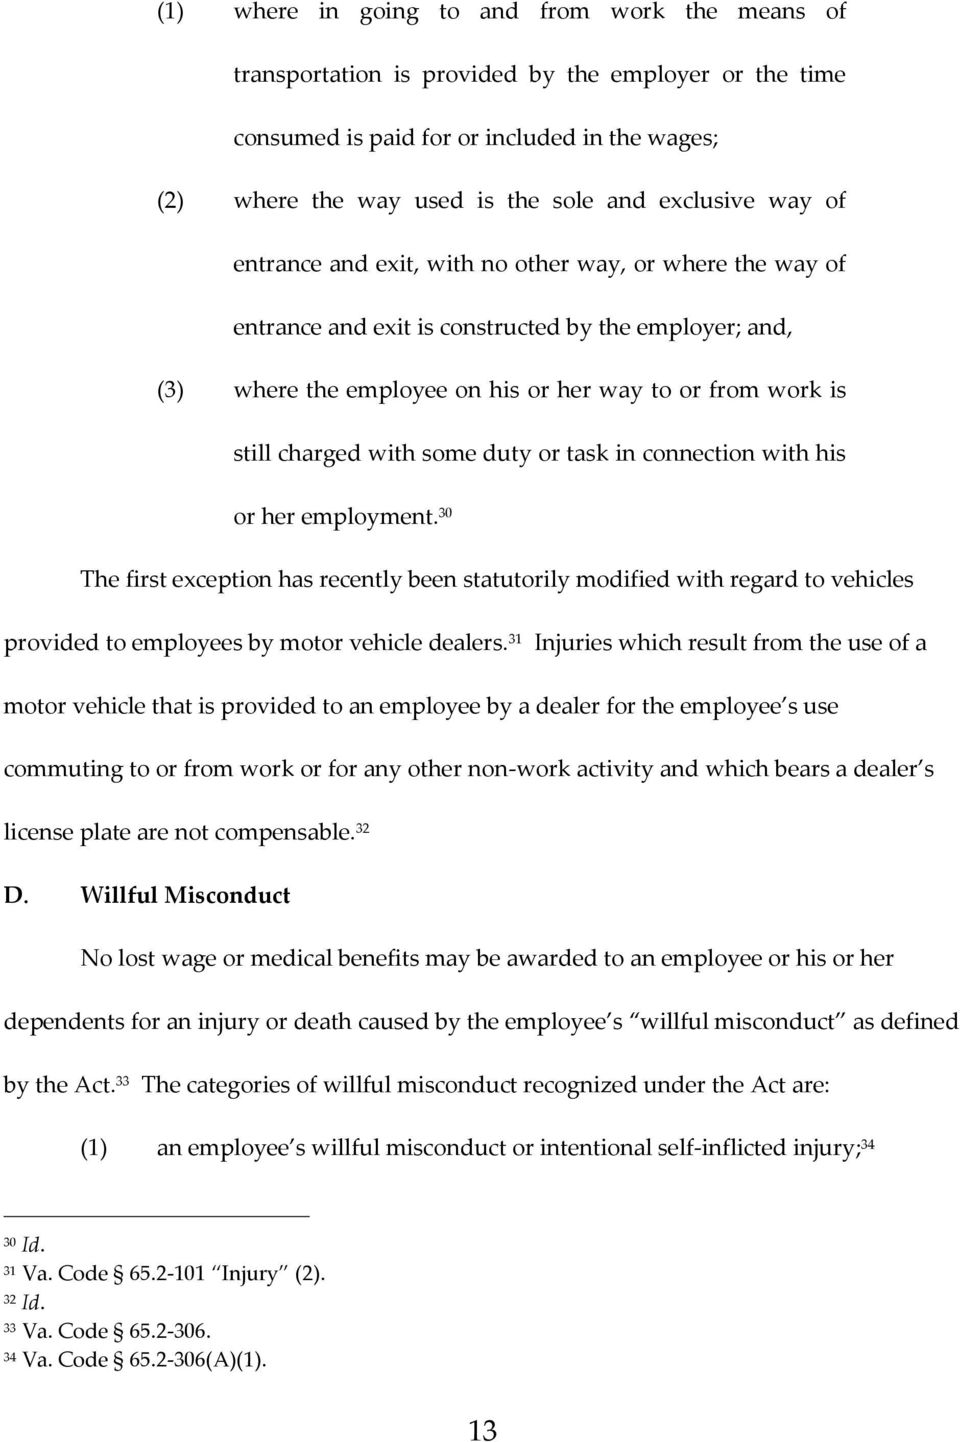 some duty or task in connection with his or her employment. 30 The first exception has recently been statutorily modified with regard to vehicles provided to employees by motor vehicle dealers.